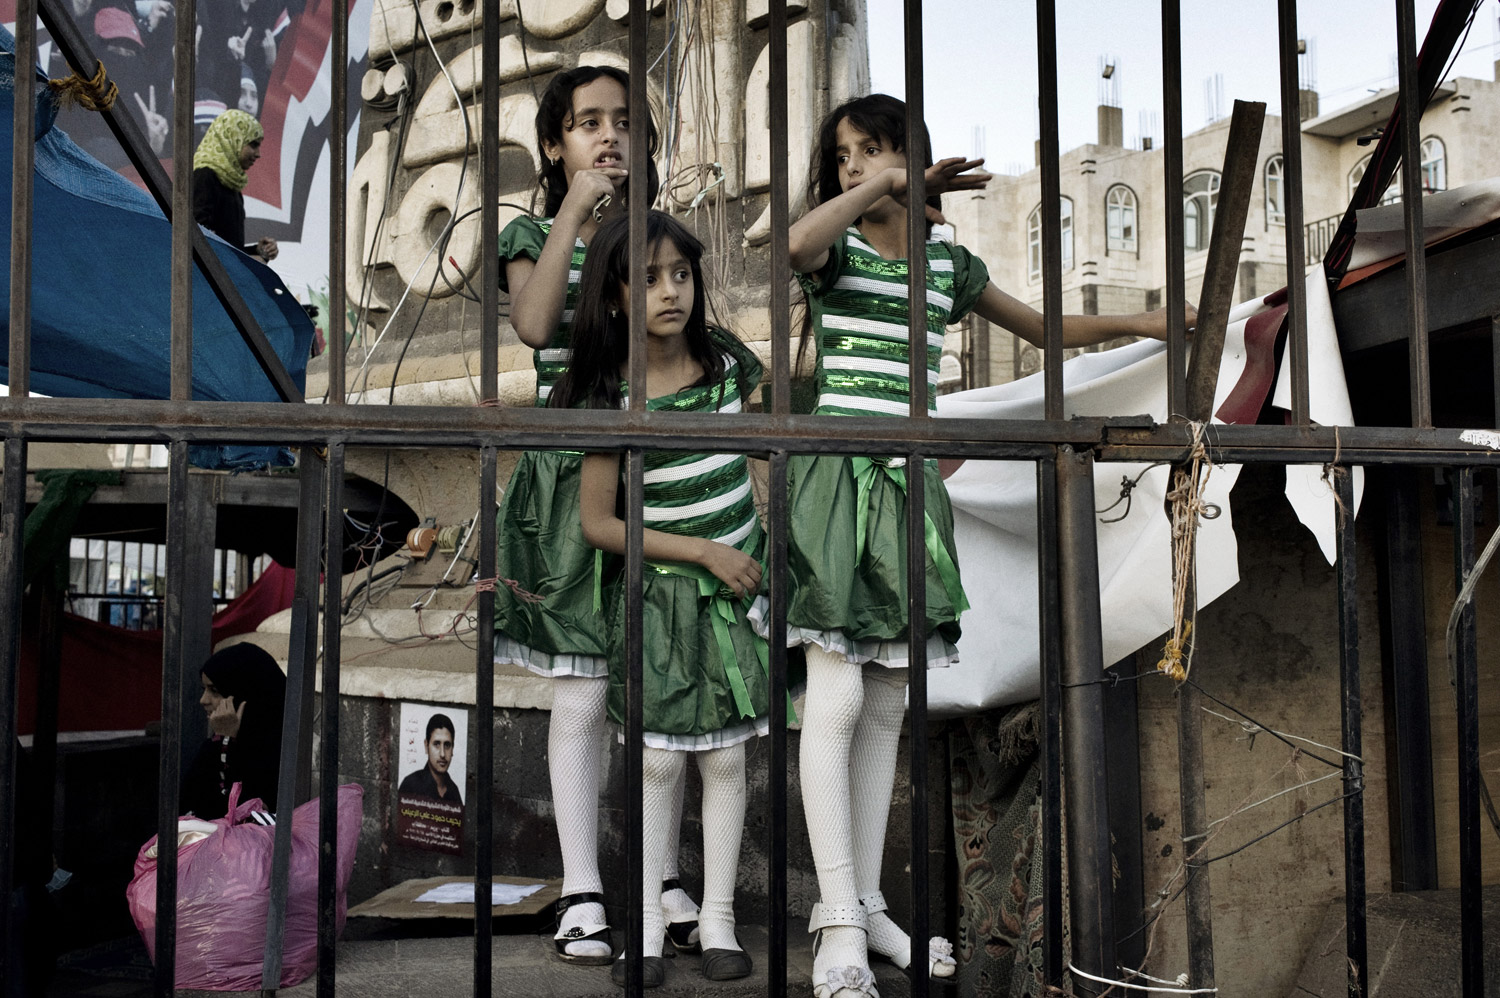 Young girls scramble onto a fence during a protest in Change Square on October 1, 2011.